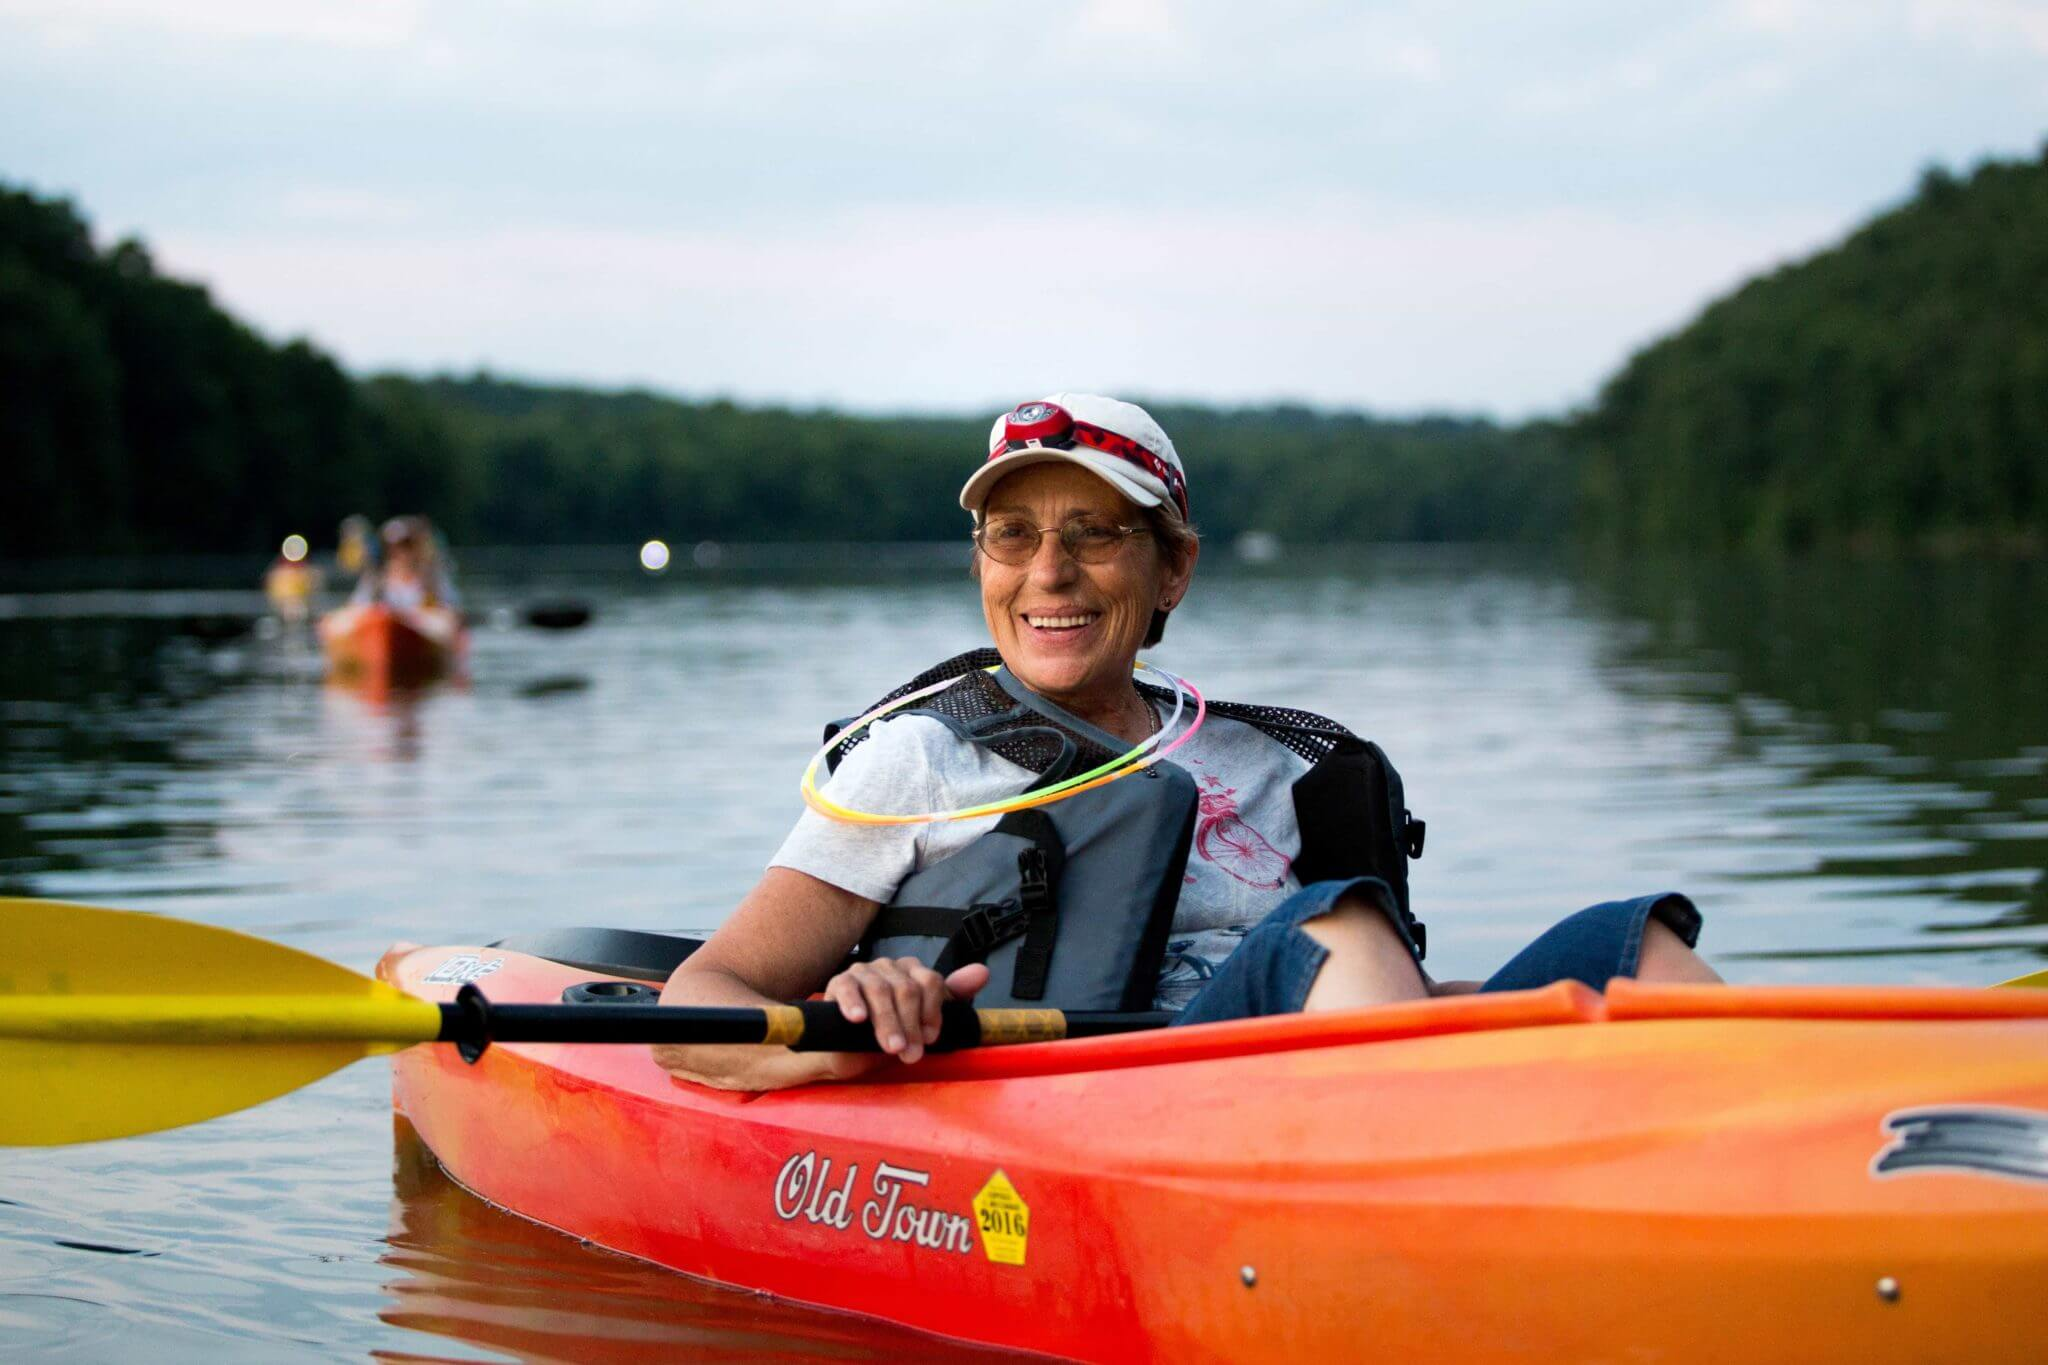 A happy woman sits in her orange kayak with glow-in-the-dark orbs around her neck as she participates in the Full Moon Kayaking event at Blue Marsh Lake.